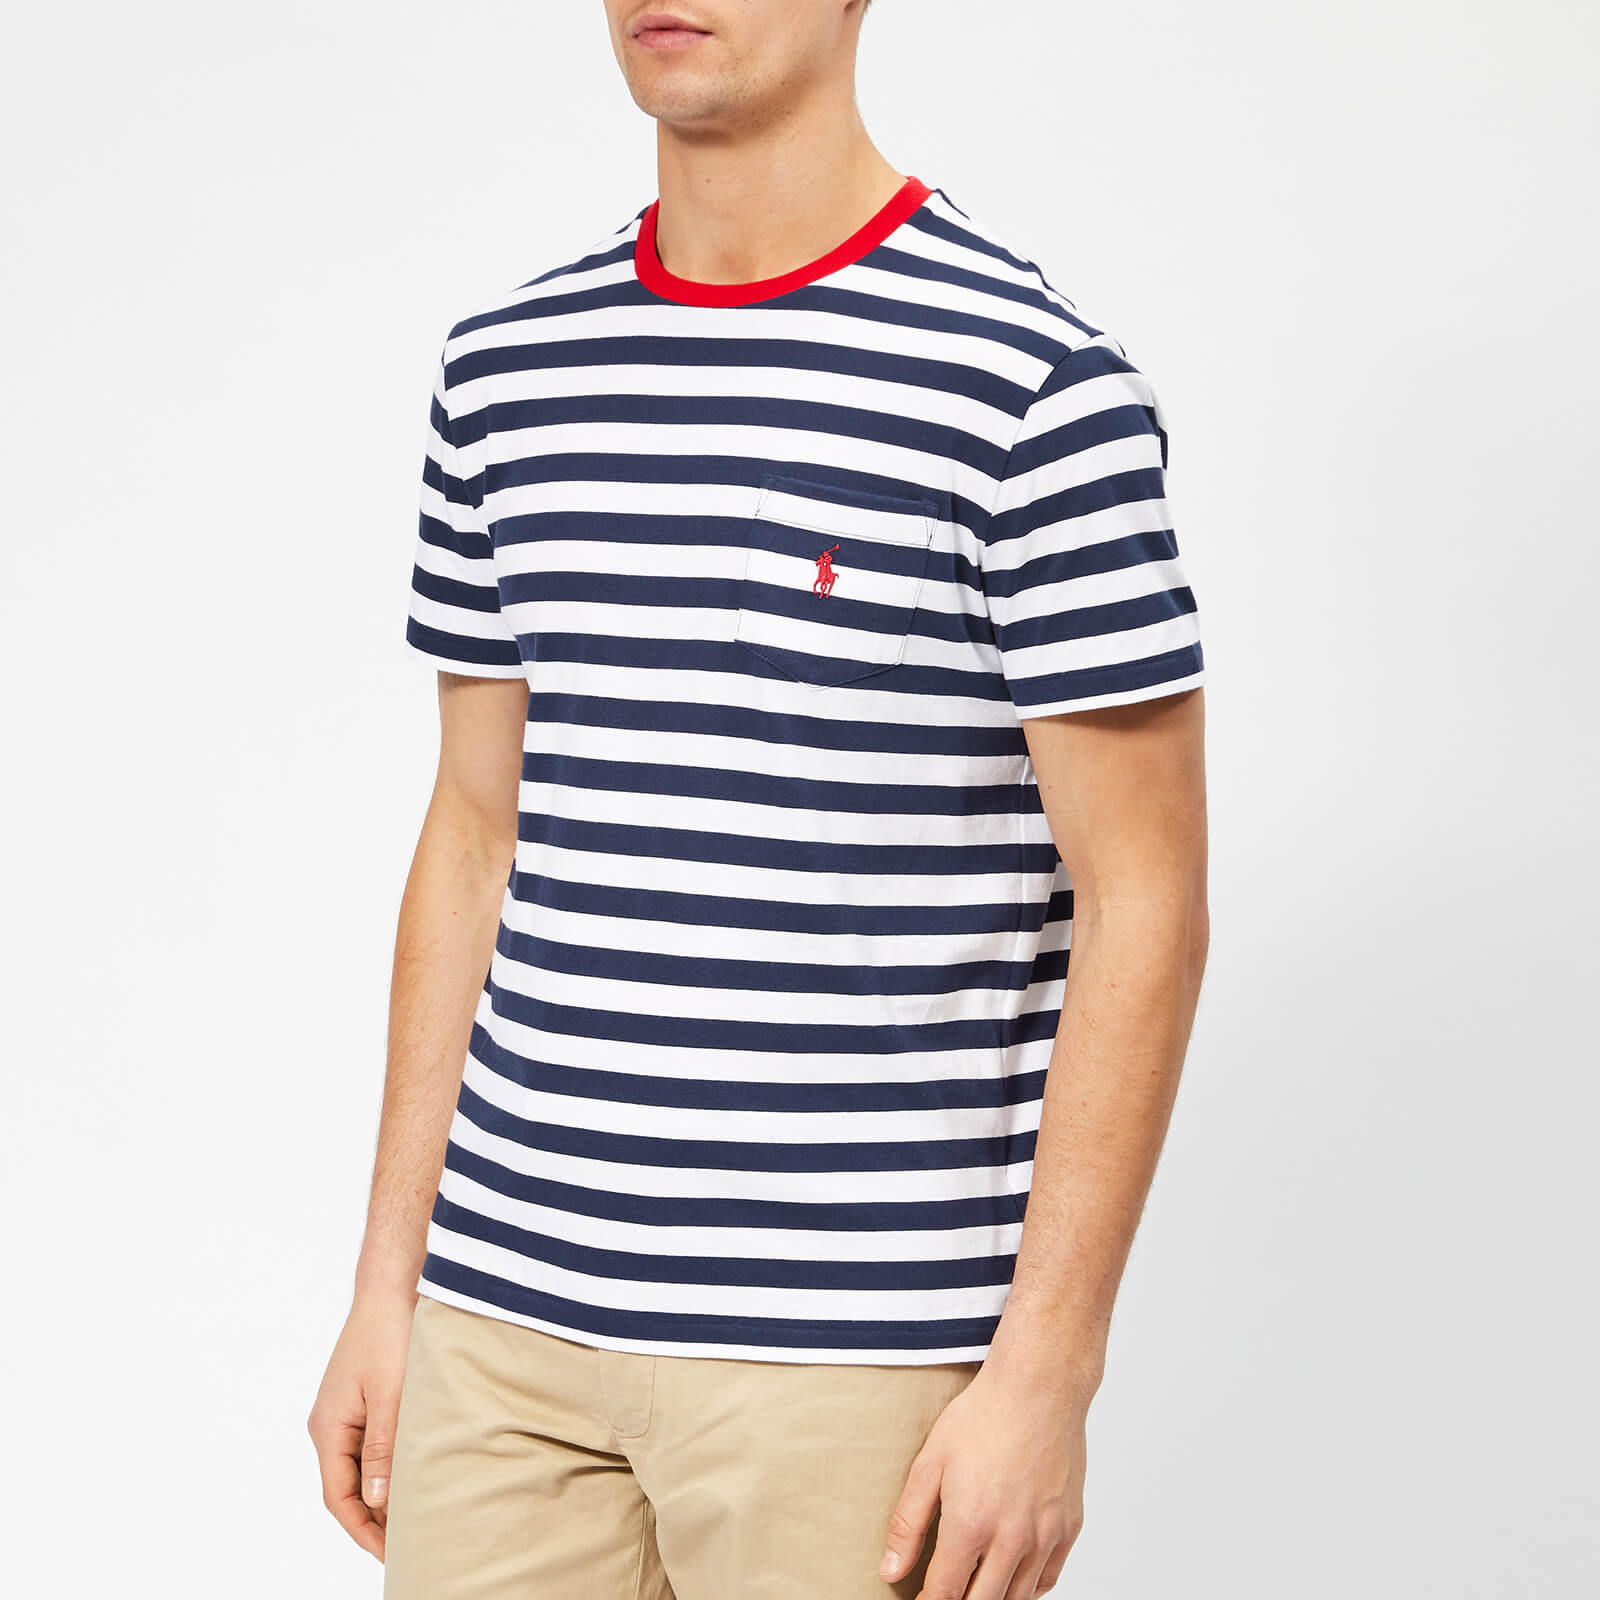 4088650c Polo Ralph Lauren Men's Stripe Pocket T-Shirt - Newport Navy/White - Free  UK Delivery over £50